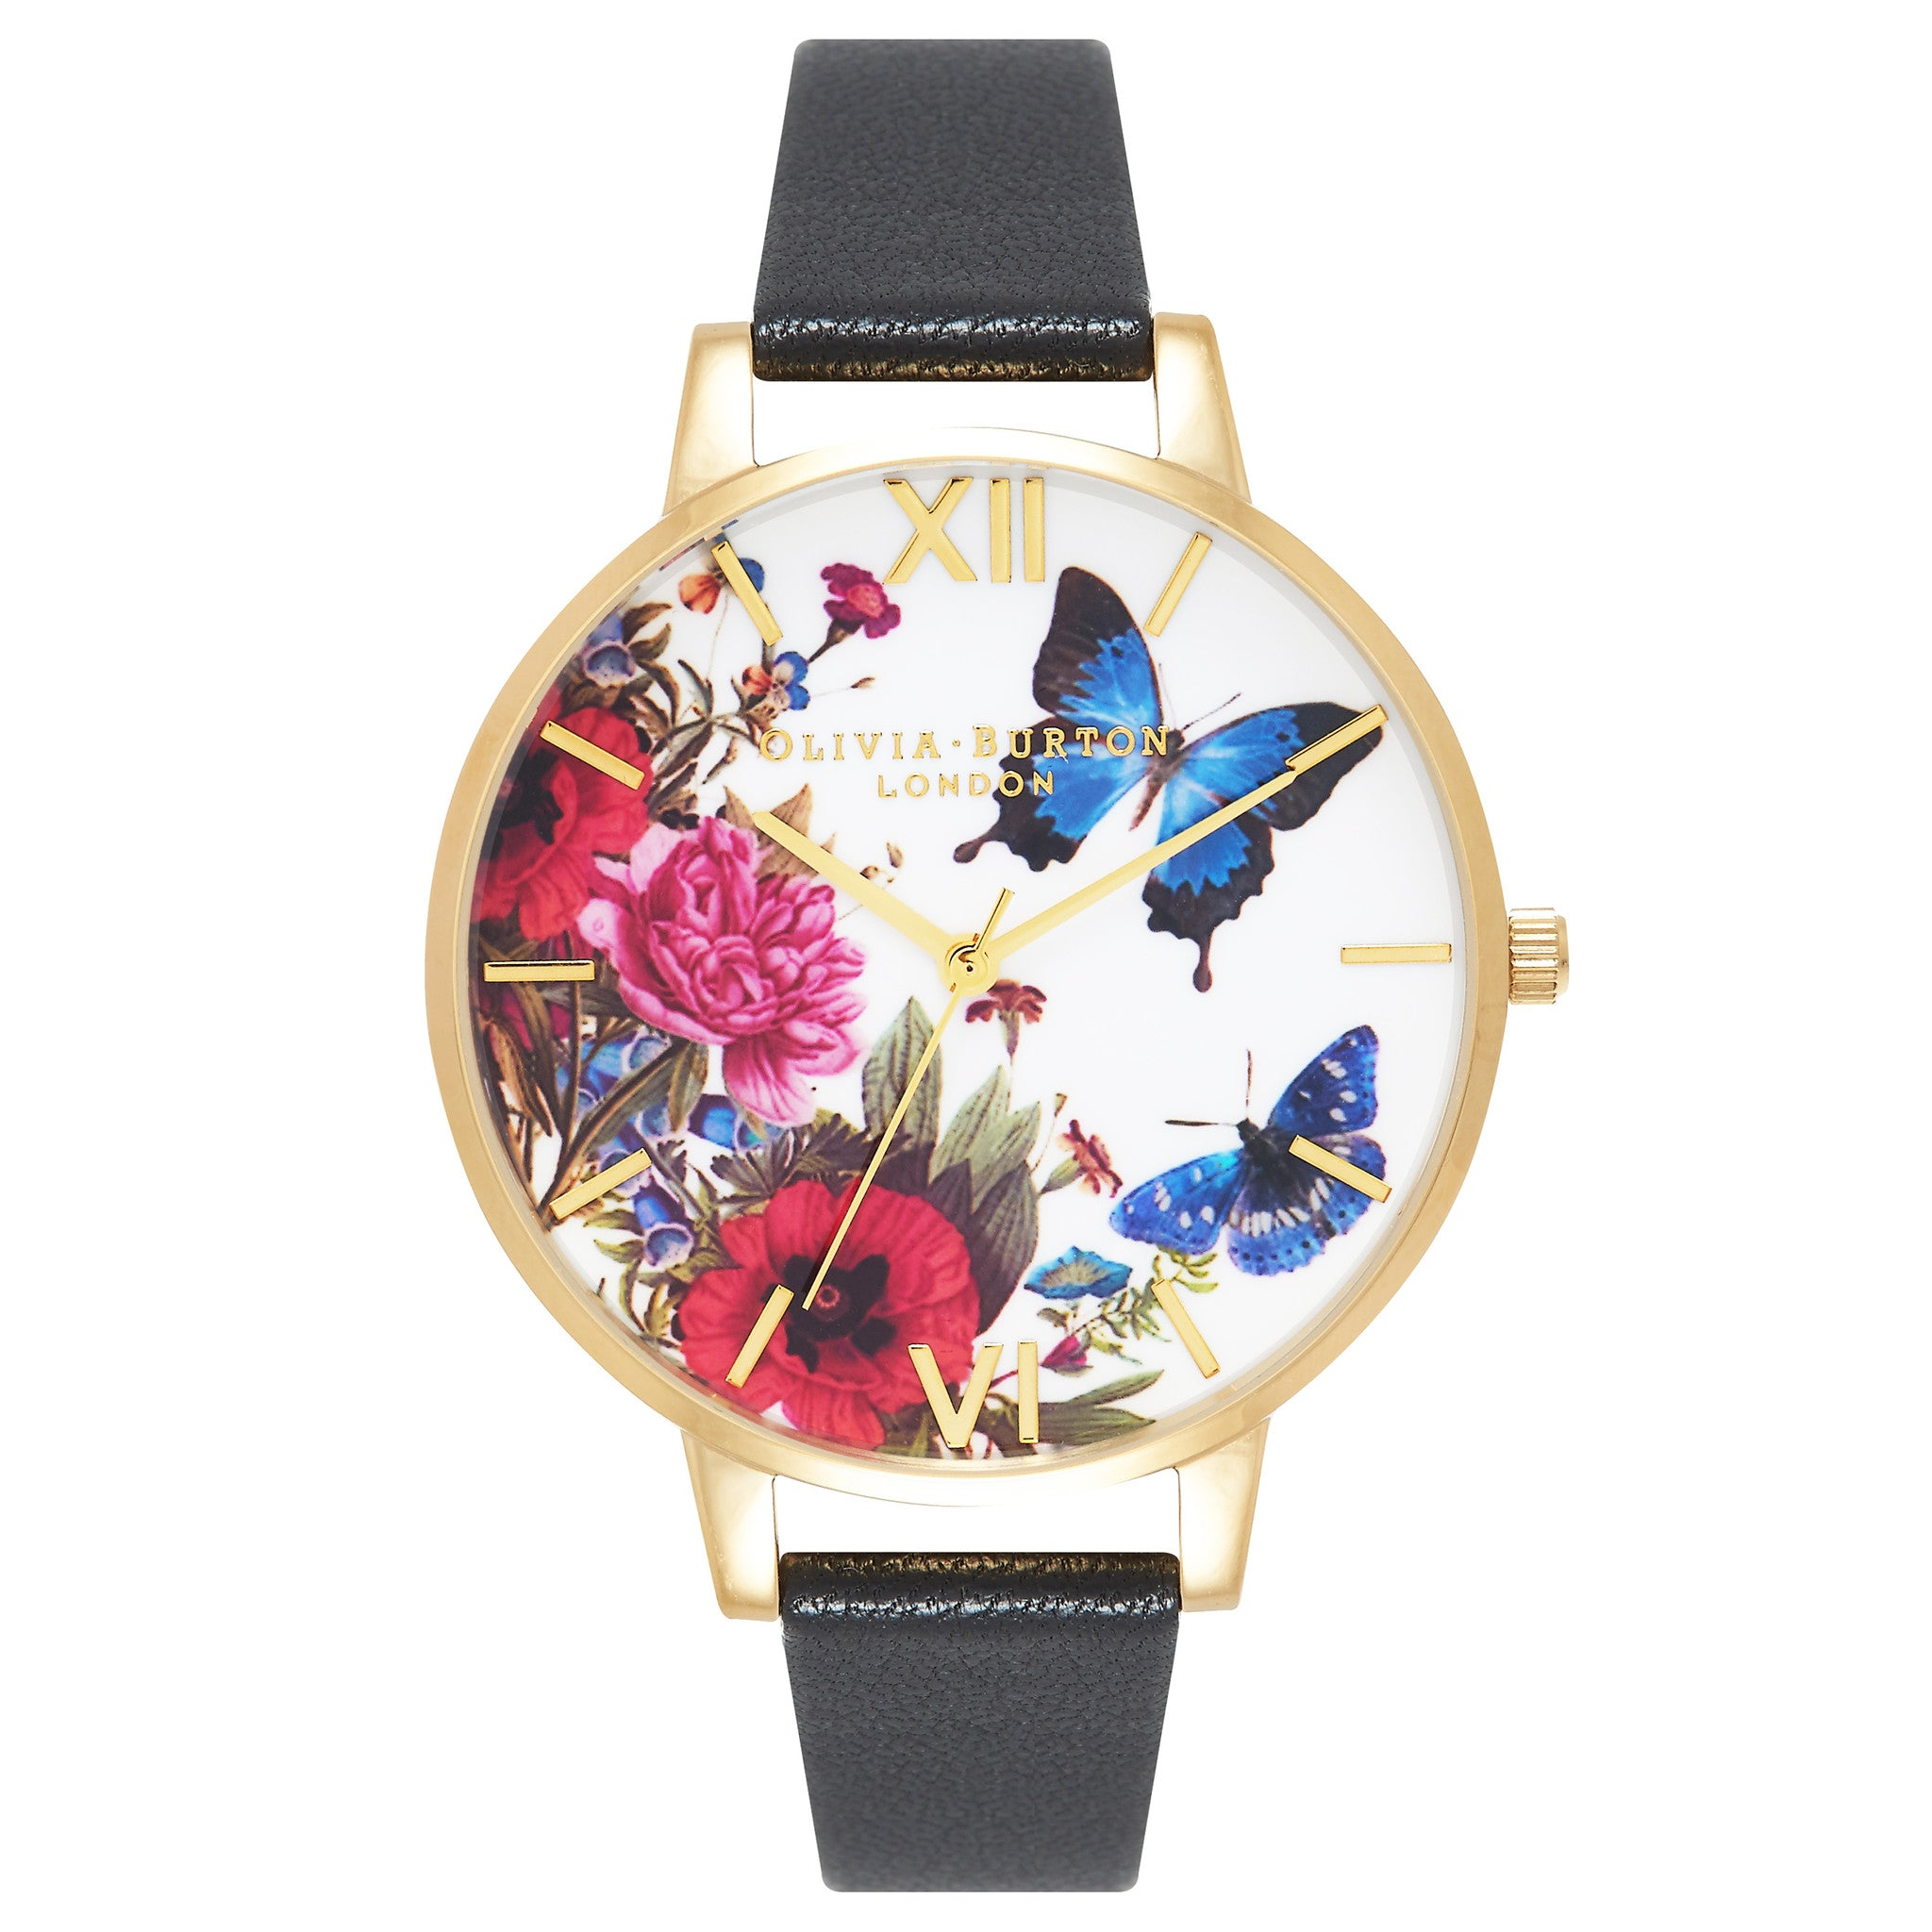 accessories watch goldtone product white metro kate stainless strap gallery york novelty gold leather butterfly lyst normal steel saffiano new spade watches